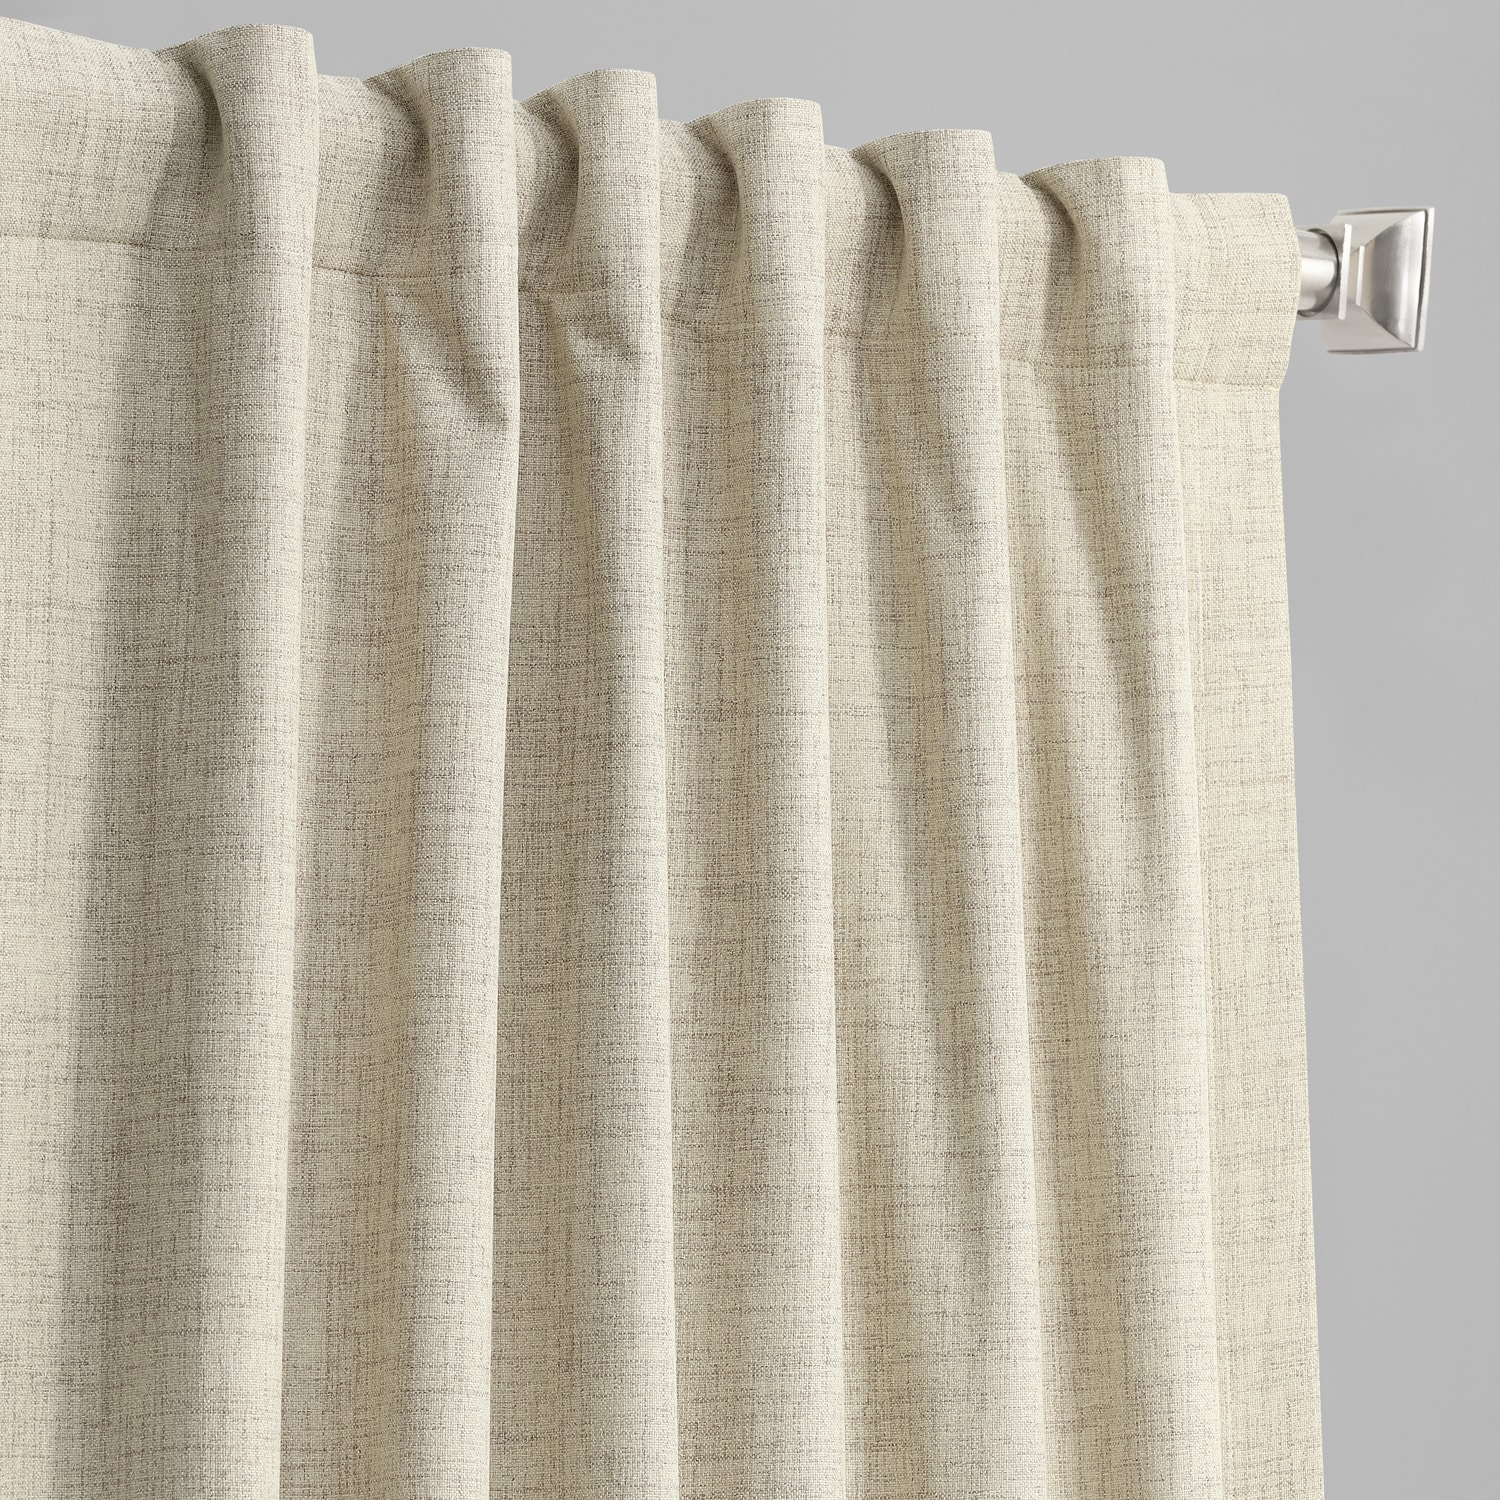 Toasted Tan Vintage Thermal Cross Linen Weave Max Blackout Curtain